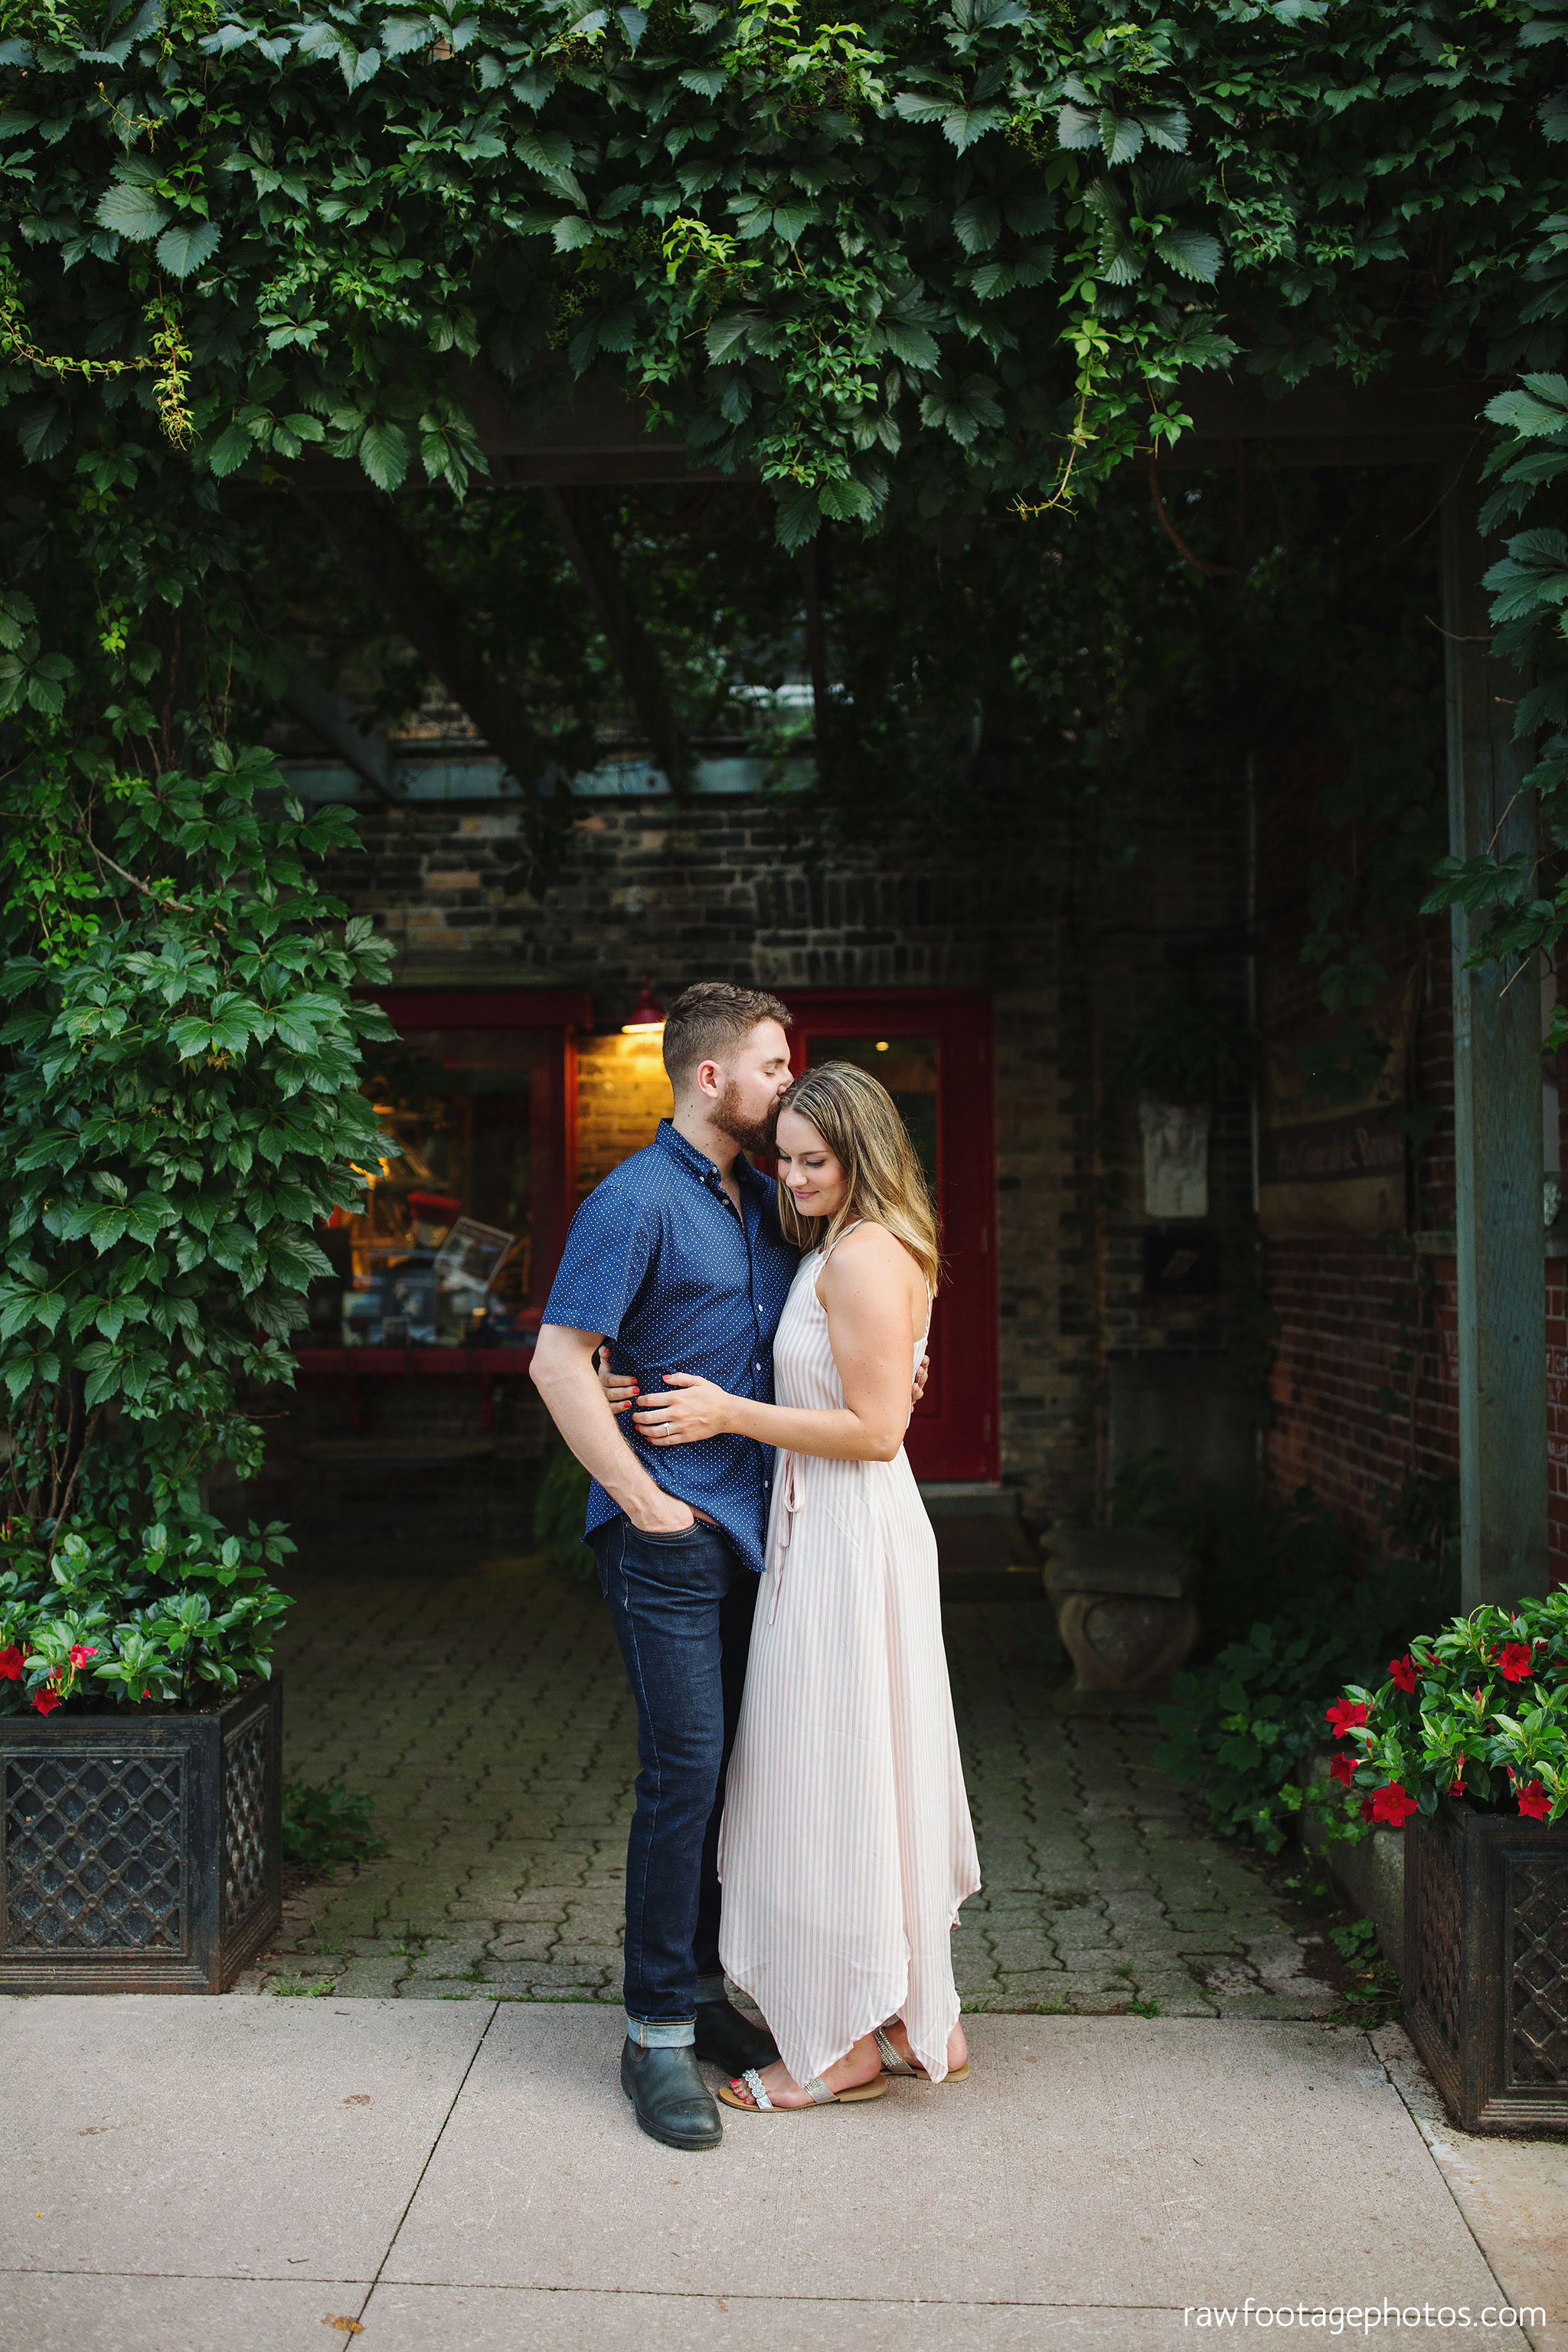 london_ontario_wedding_photographer-engagement_session-best_of_2018-raw_footage_photography050 copy.jpg